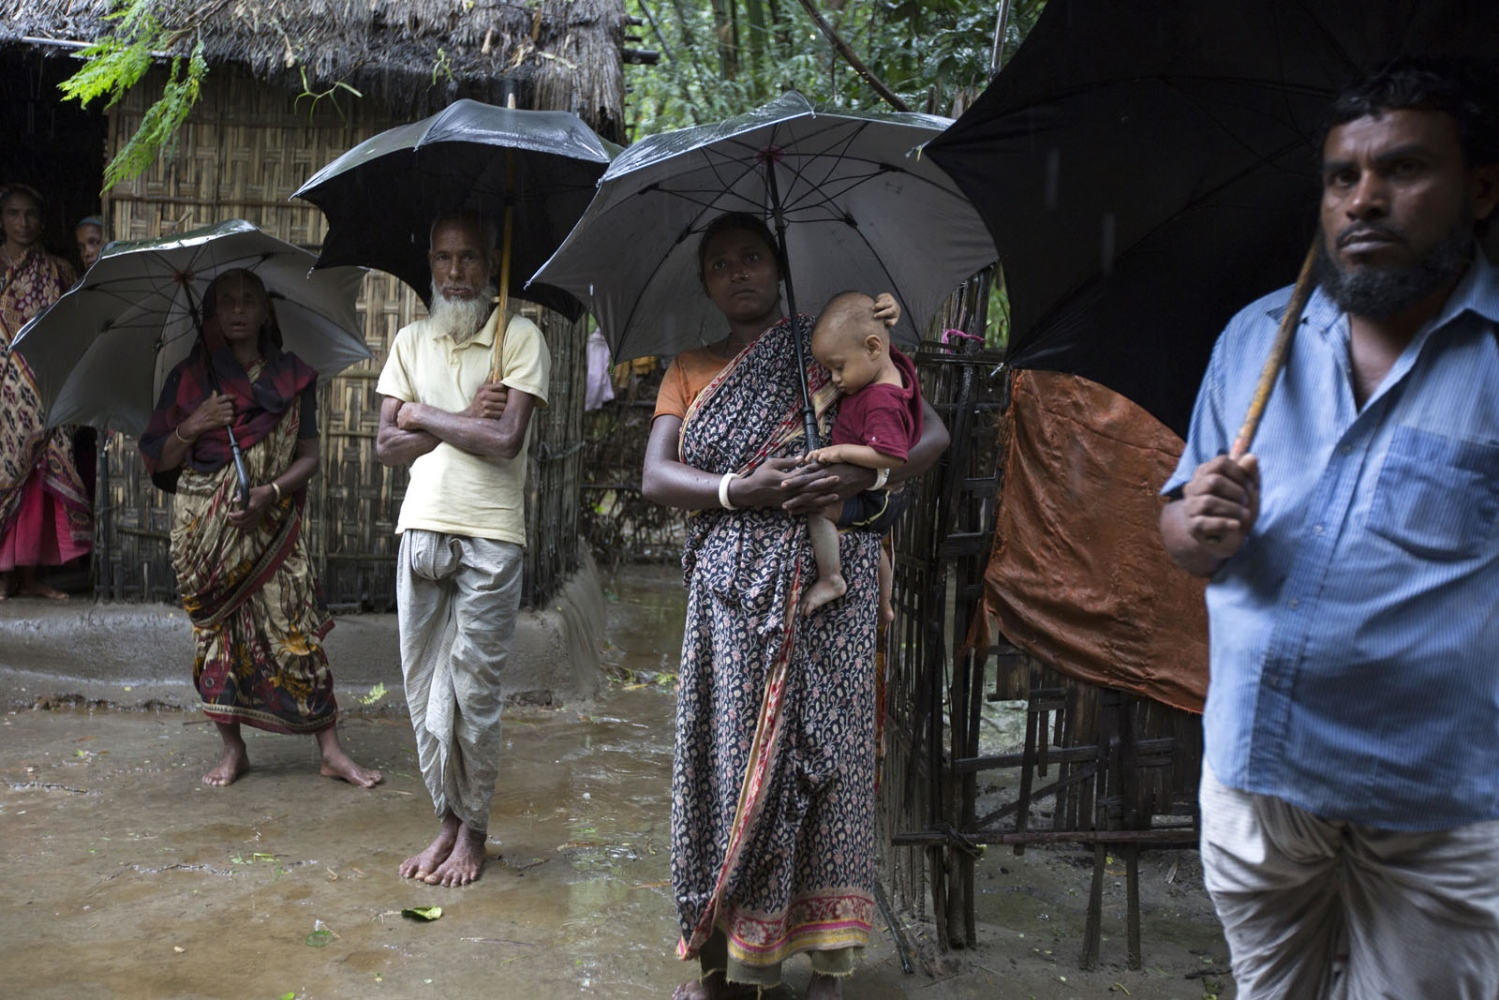 Residents of an enclave called Dayuti shelter from rain under umbrellas. This relatively large enclave with a small population has fallen victim to powerful Bangladeshi families who have moved in to the enclave to grow eucalyptus evicting any local residents in their way. Because the Bangladeshi police have no jurisdiction in the enclaves the locals are powerless.